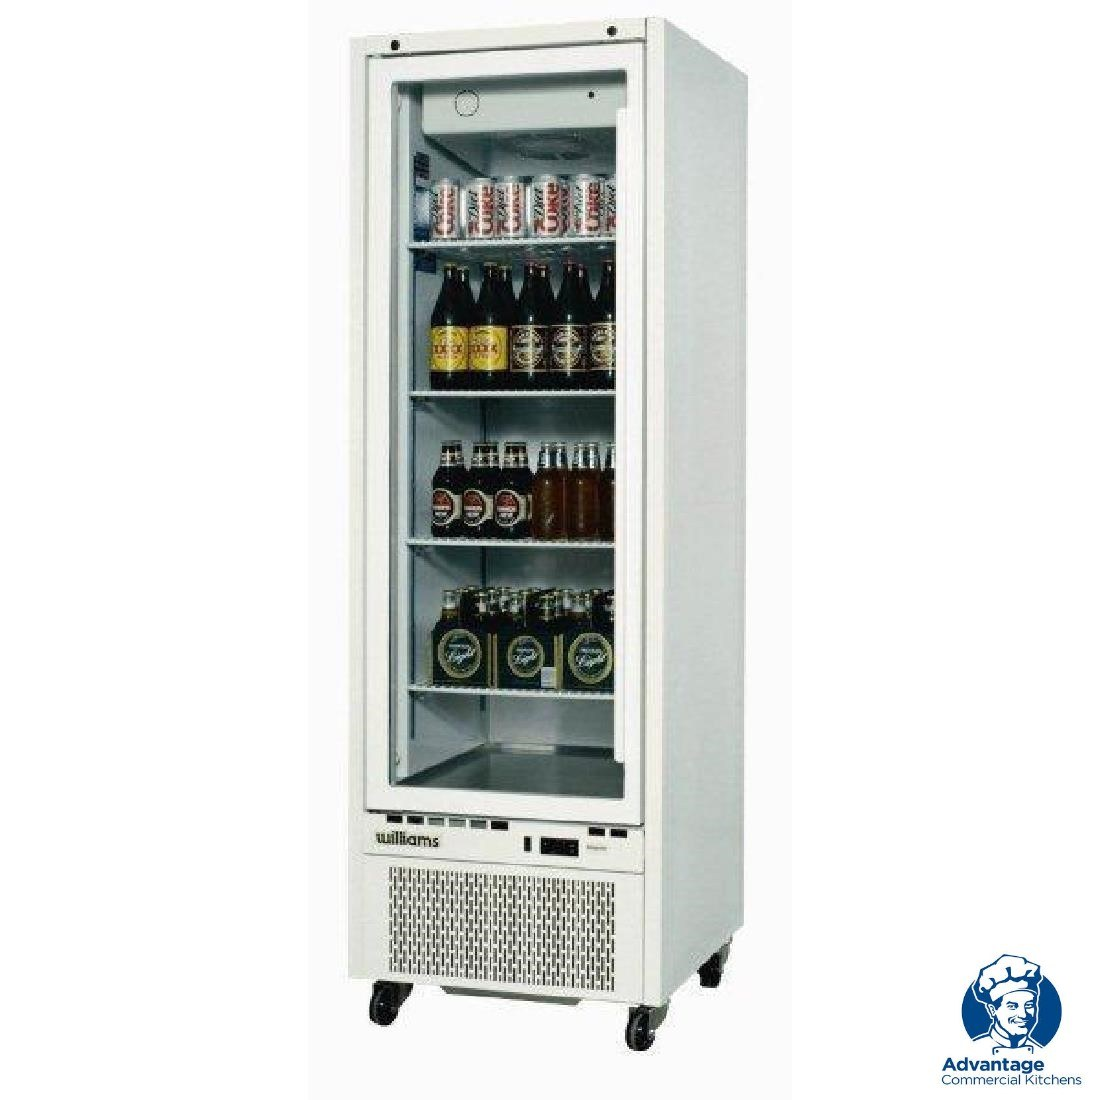 Williams HQ14GDCB Upright Single Glass Door Fridge